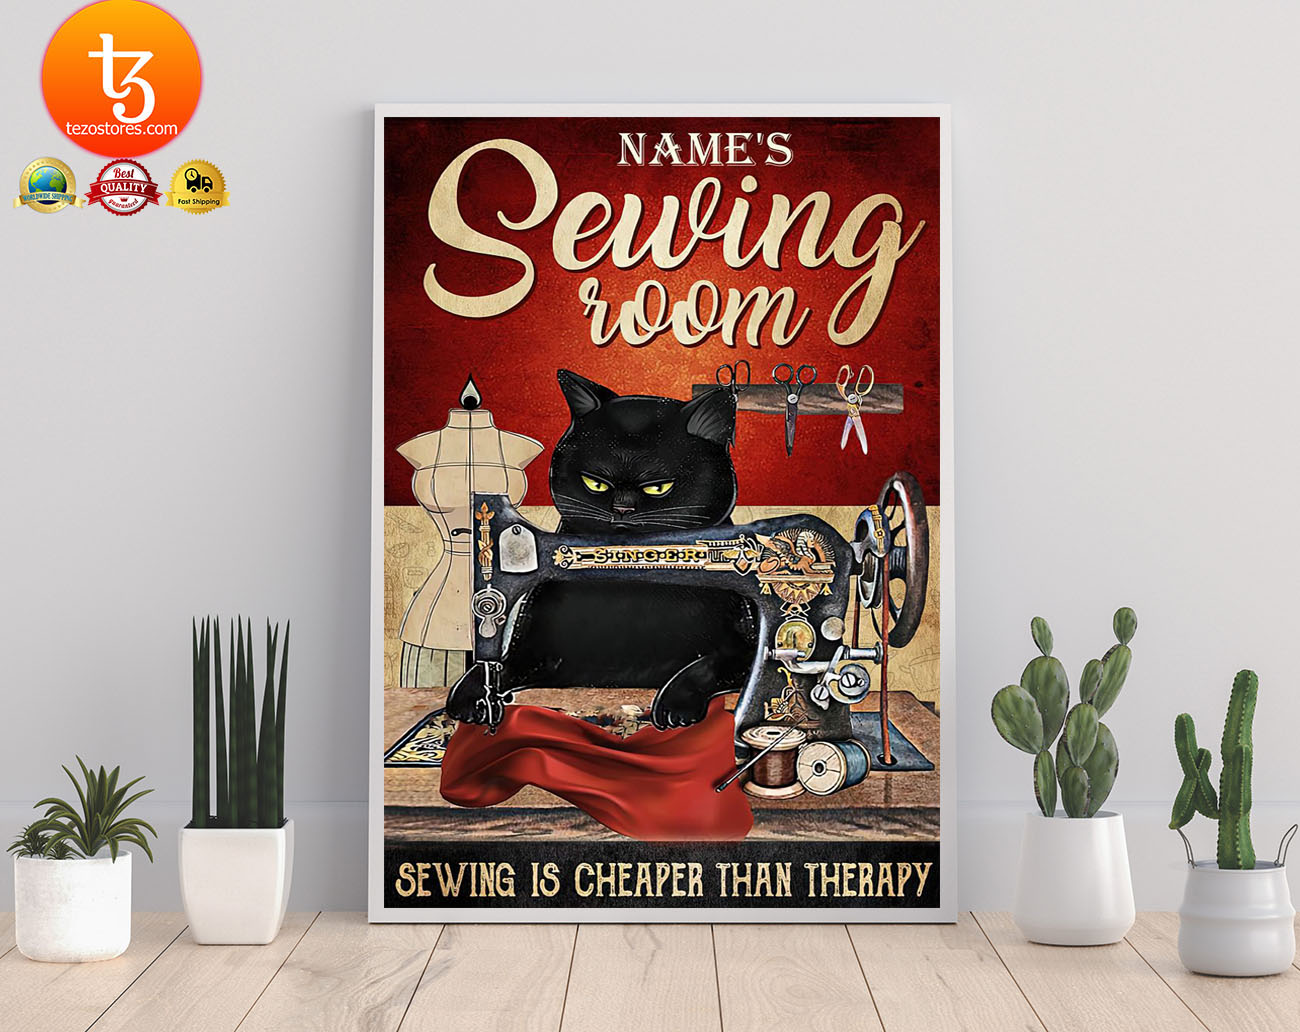 Sewing room sewing is cheaper than therapy poster 21